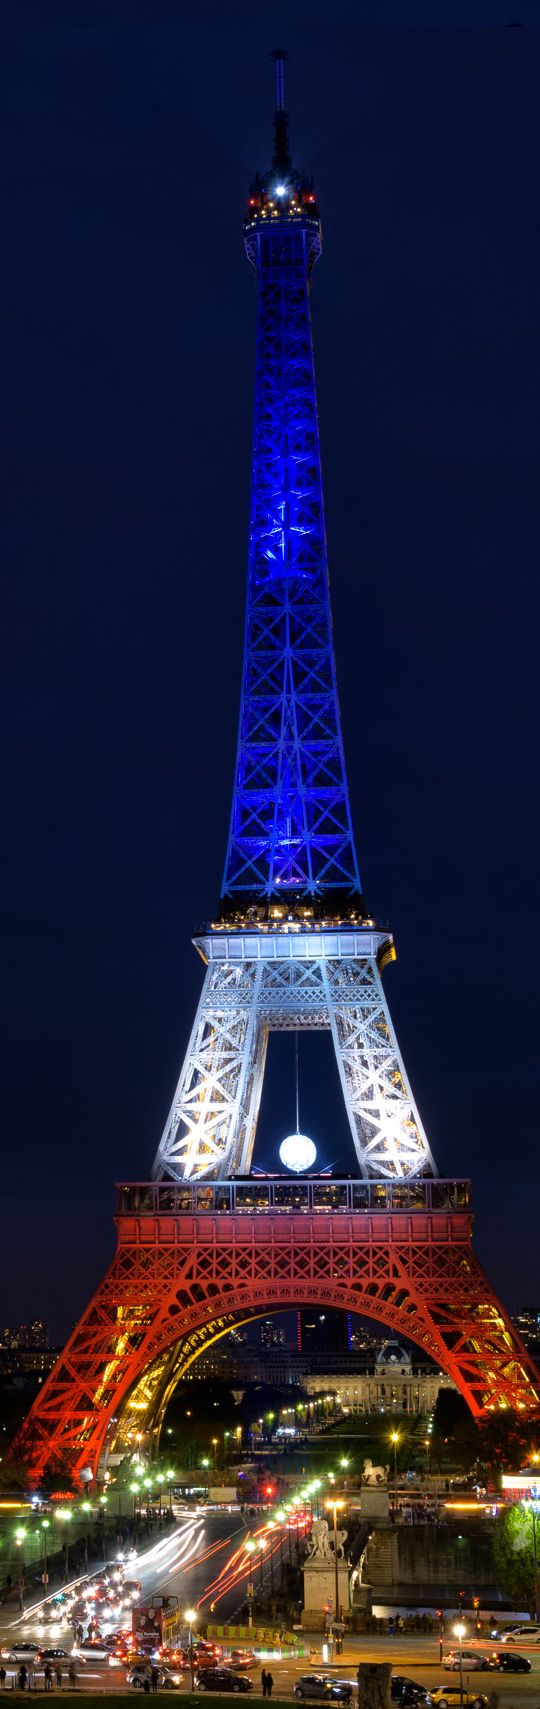 France | Paris | The Eiffel tower illuminated with the Colors of the French Flag